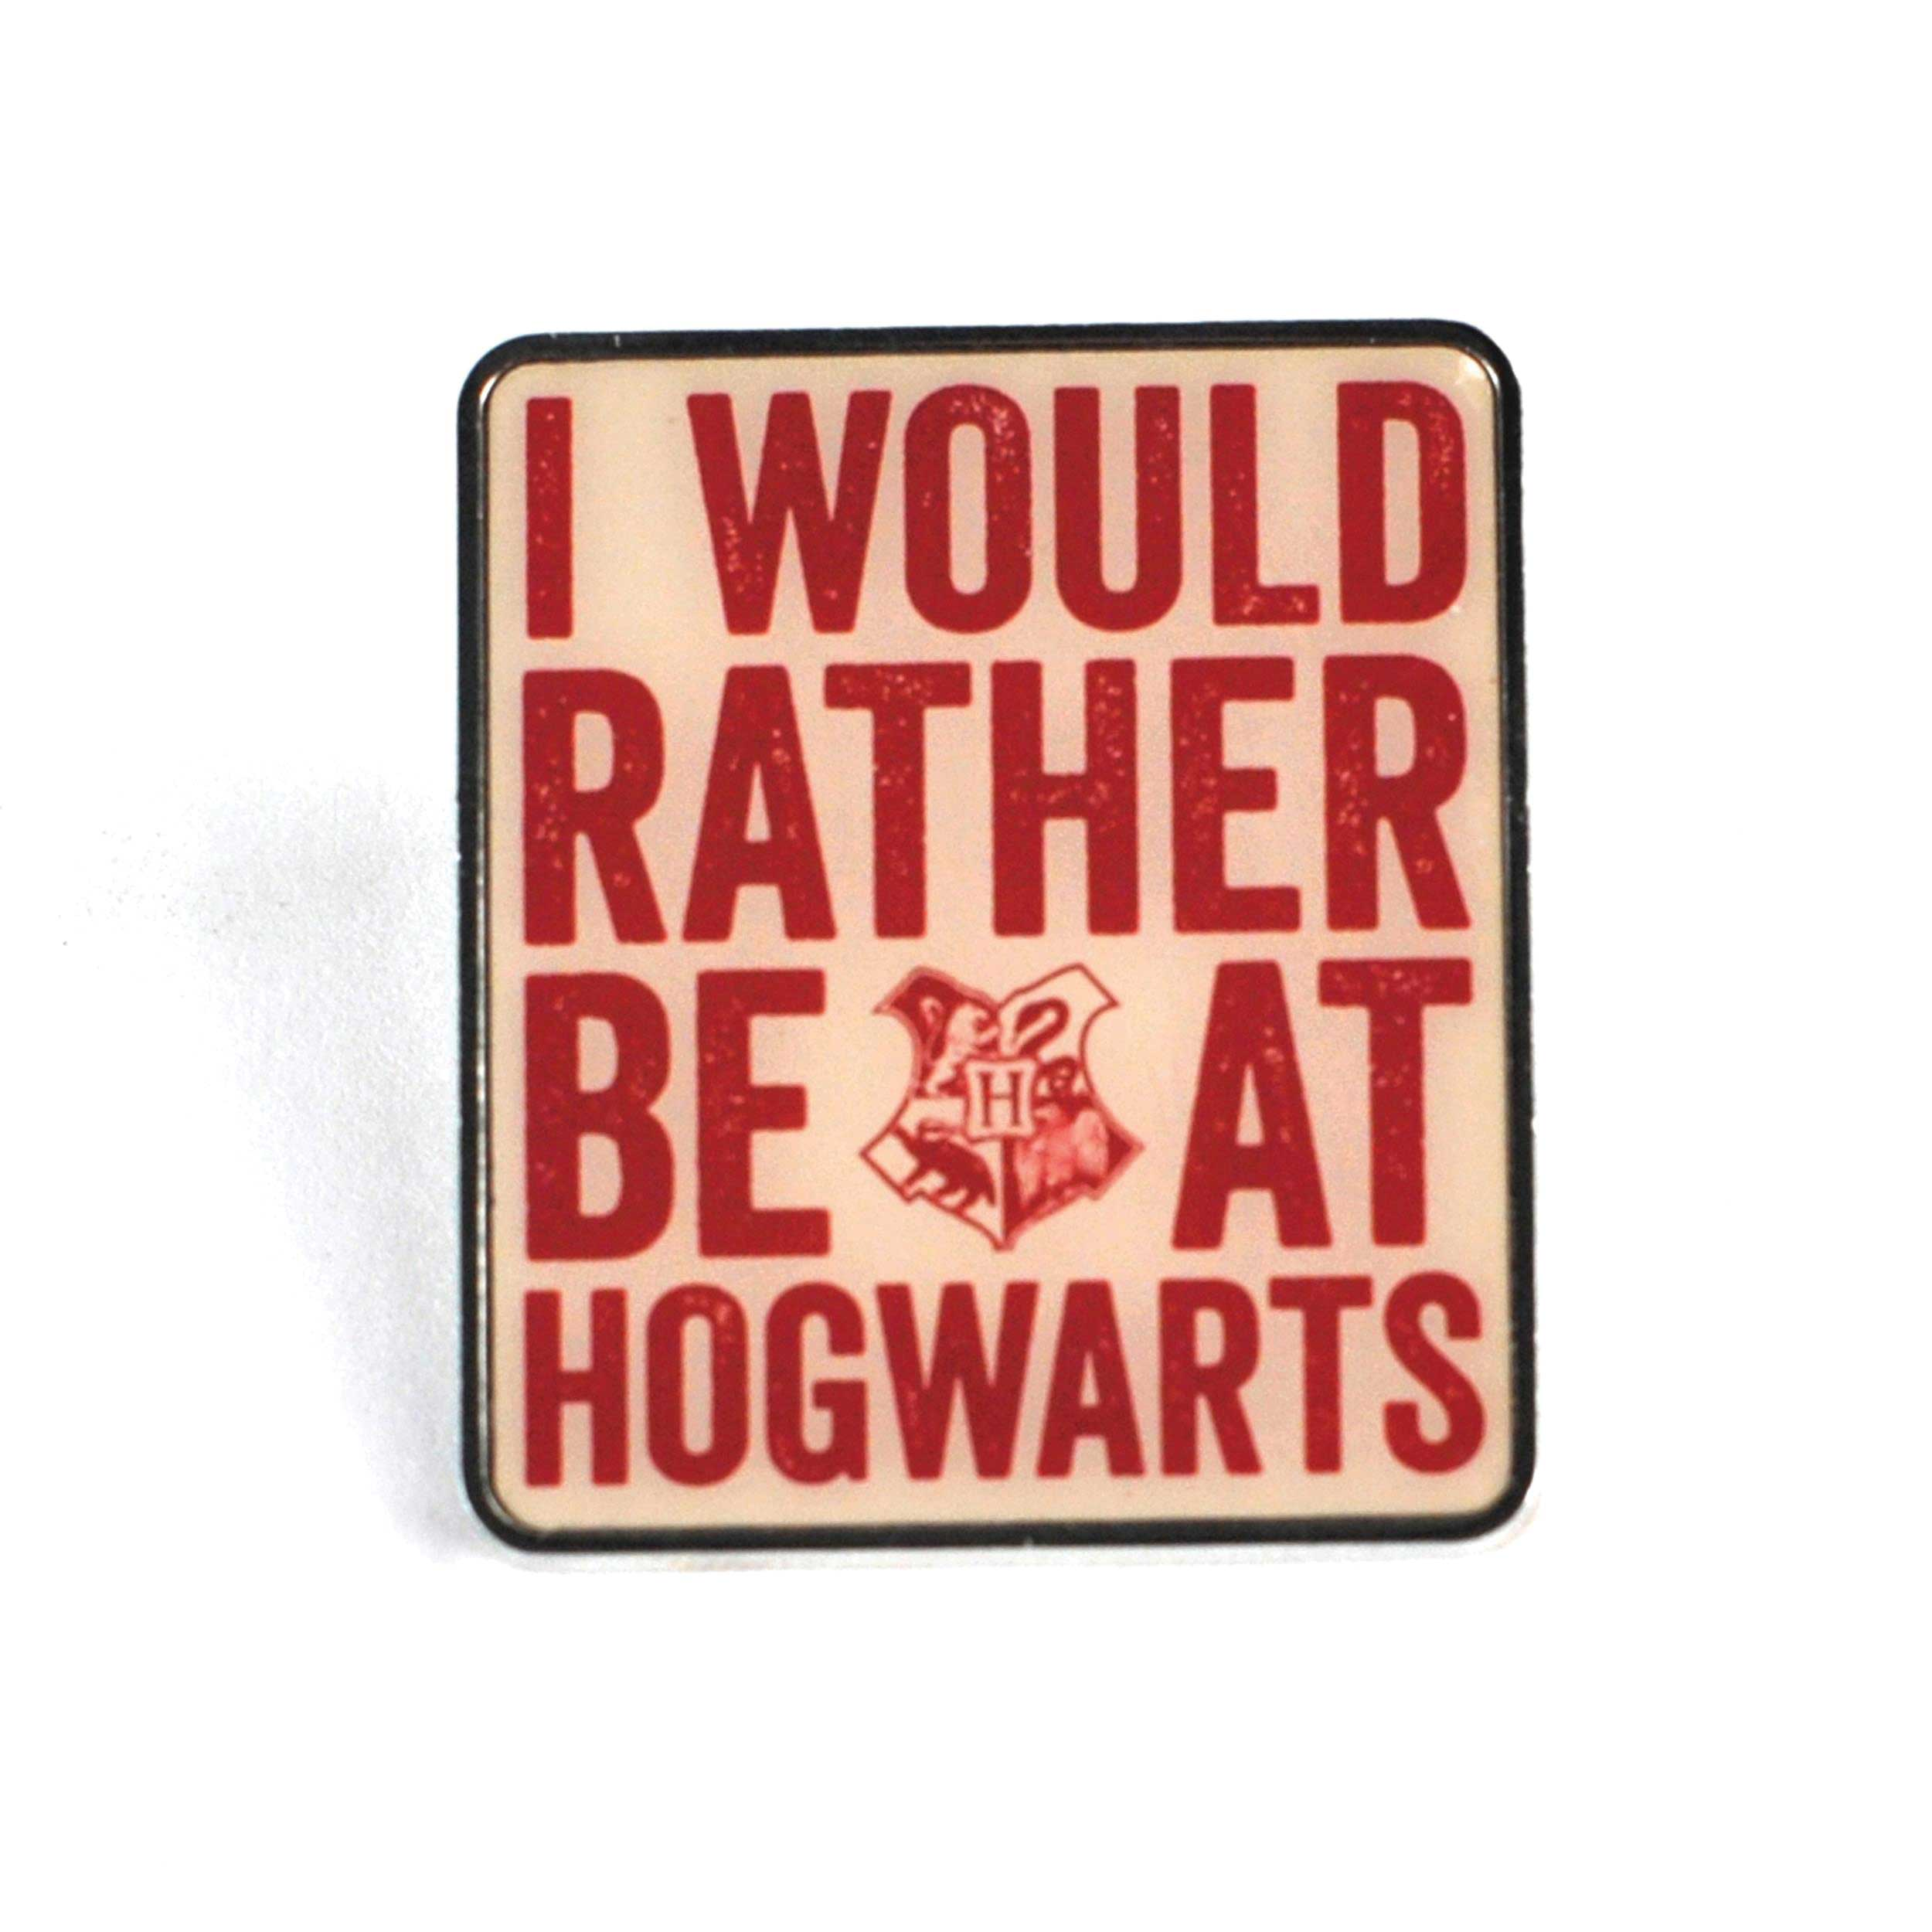 Harry Potter, Rather Be At Hogwarts Pin